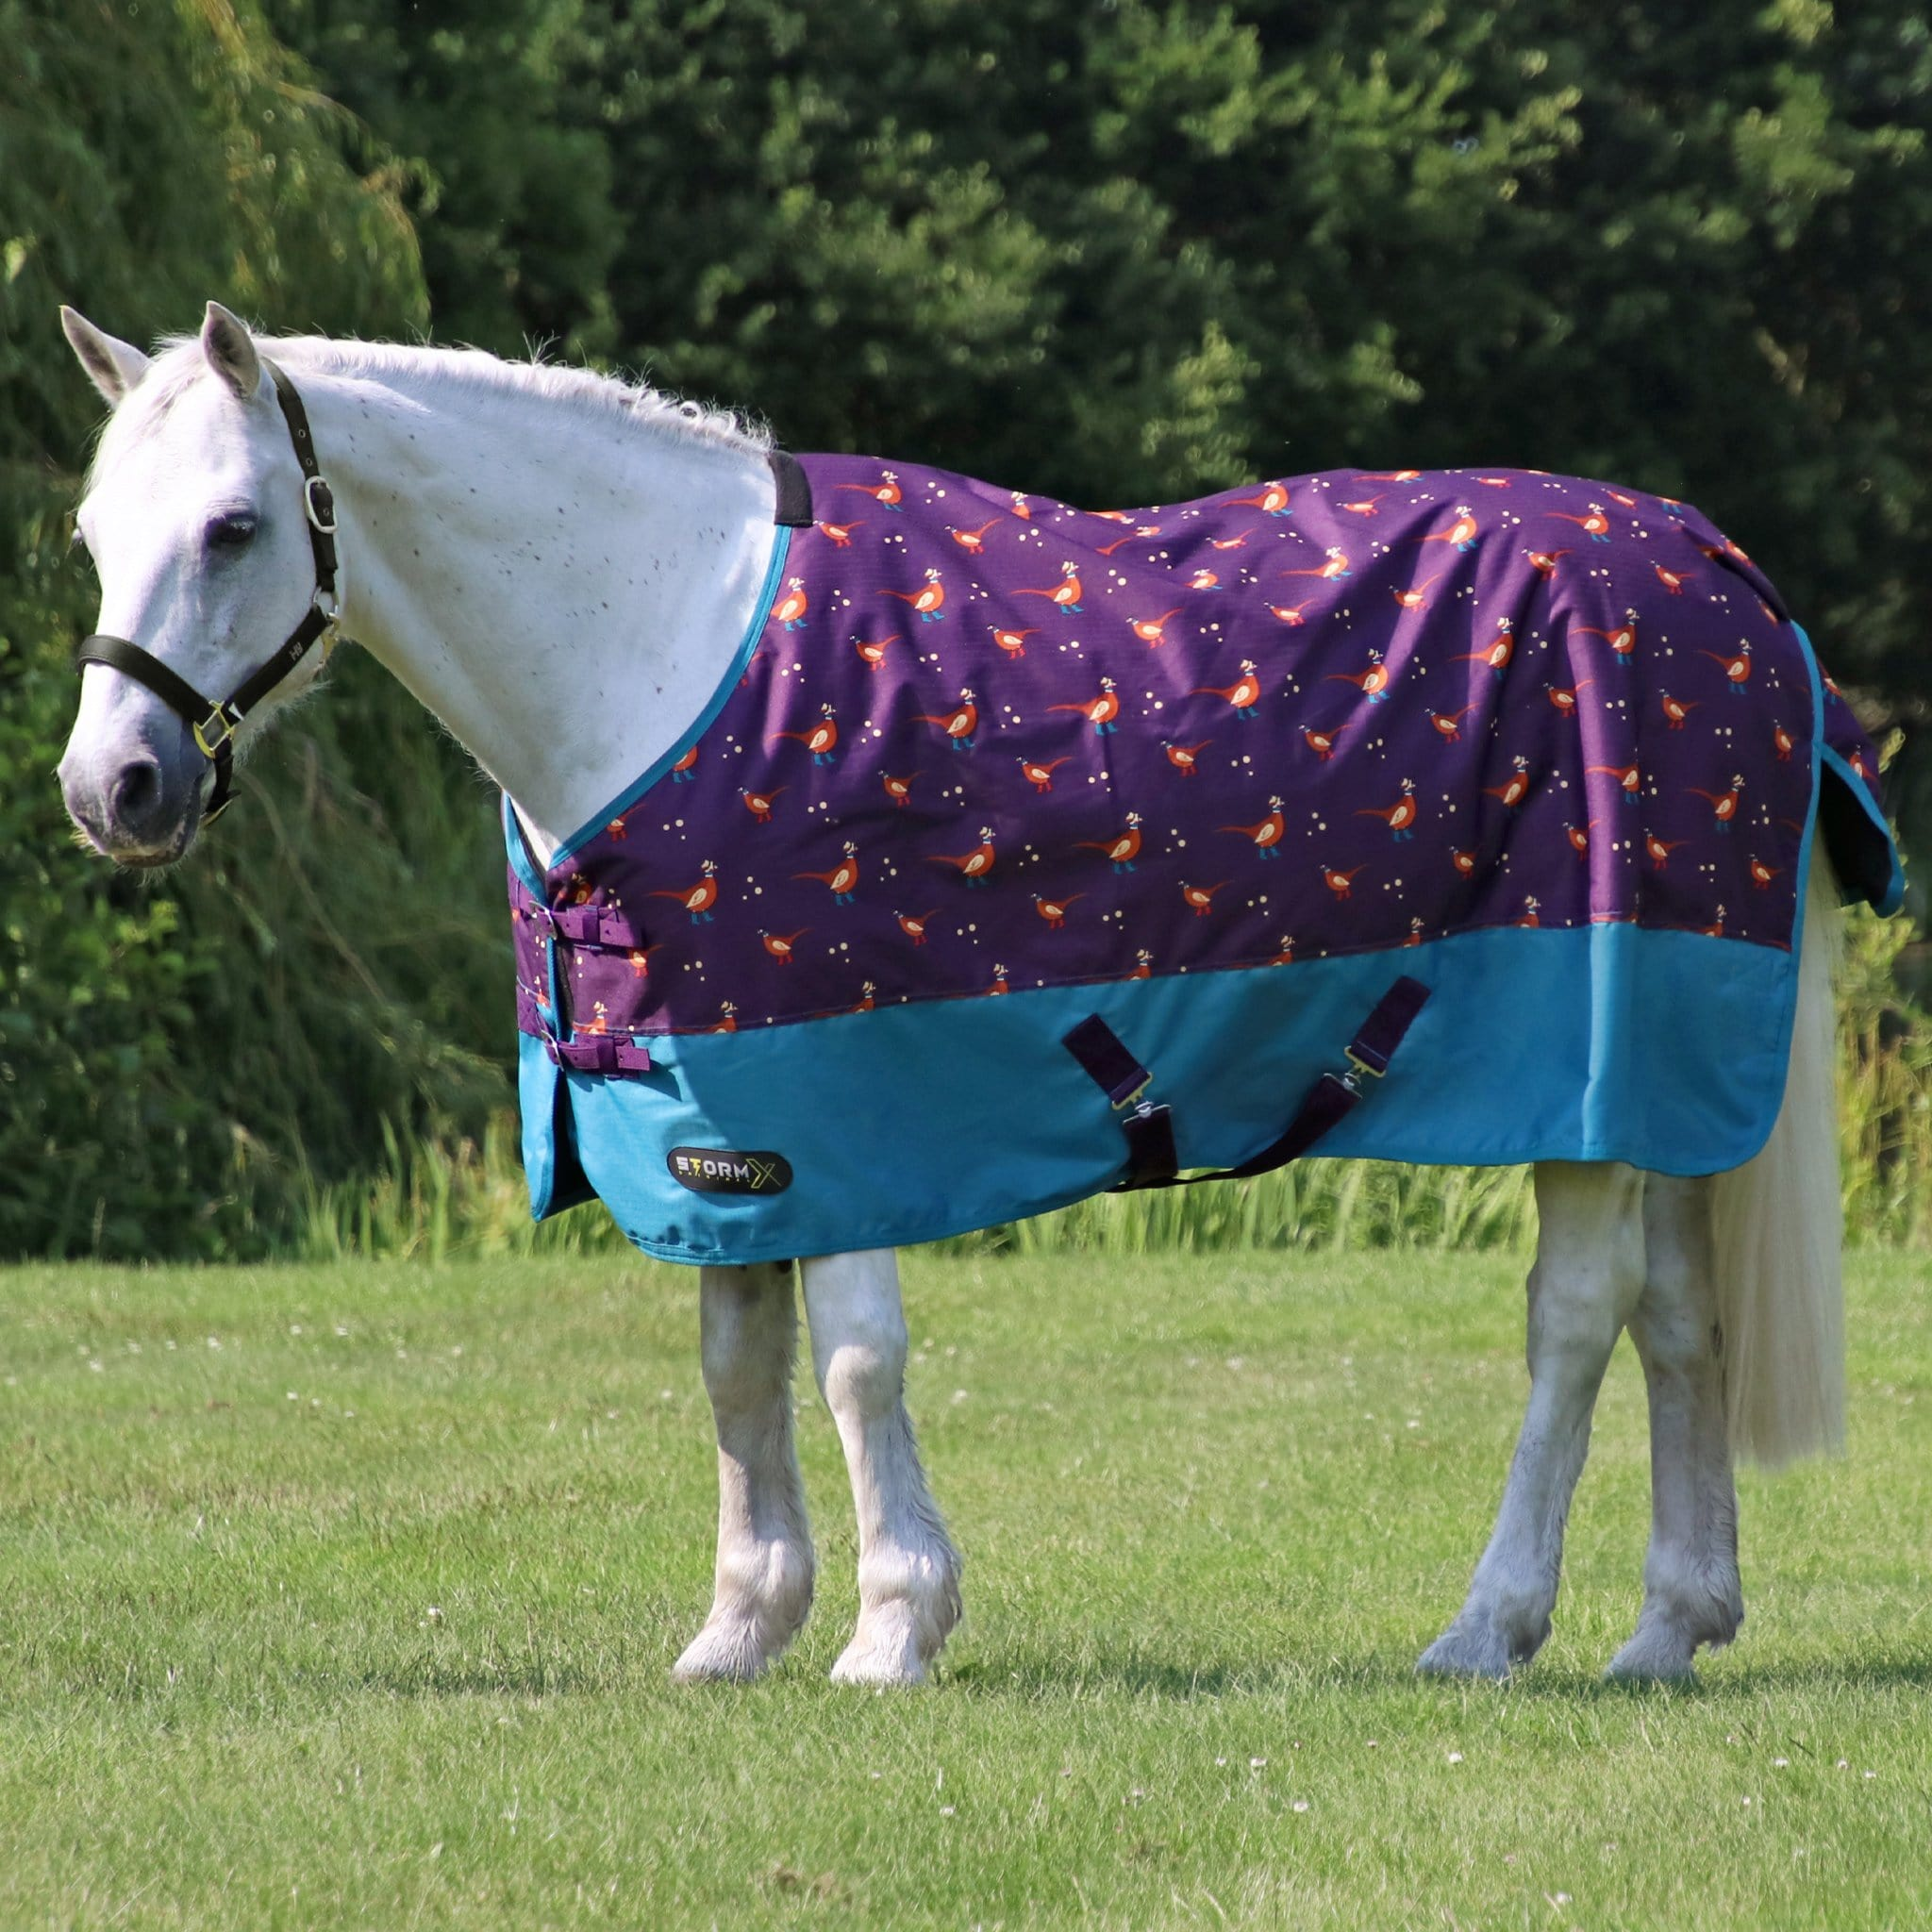 Hy StormX Original Patrick the Pheasant Lightweight 100g Standard Turnout Rug 28390